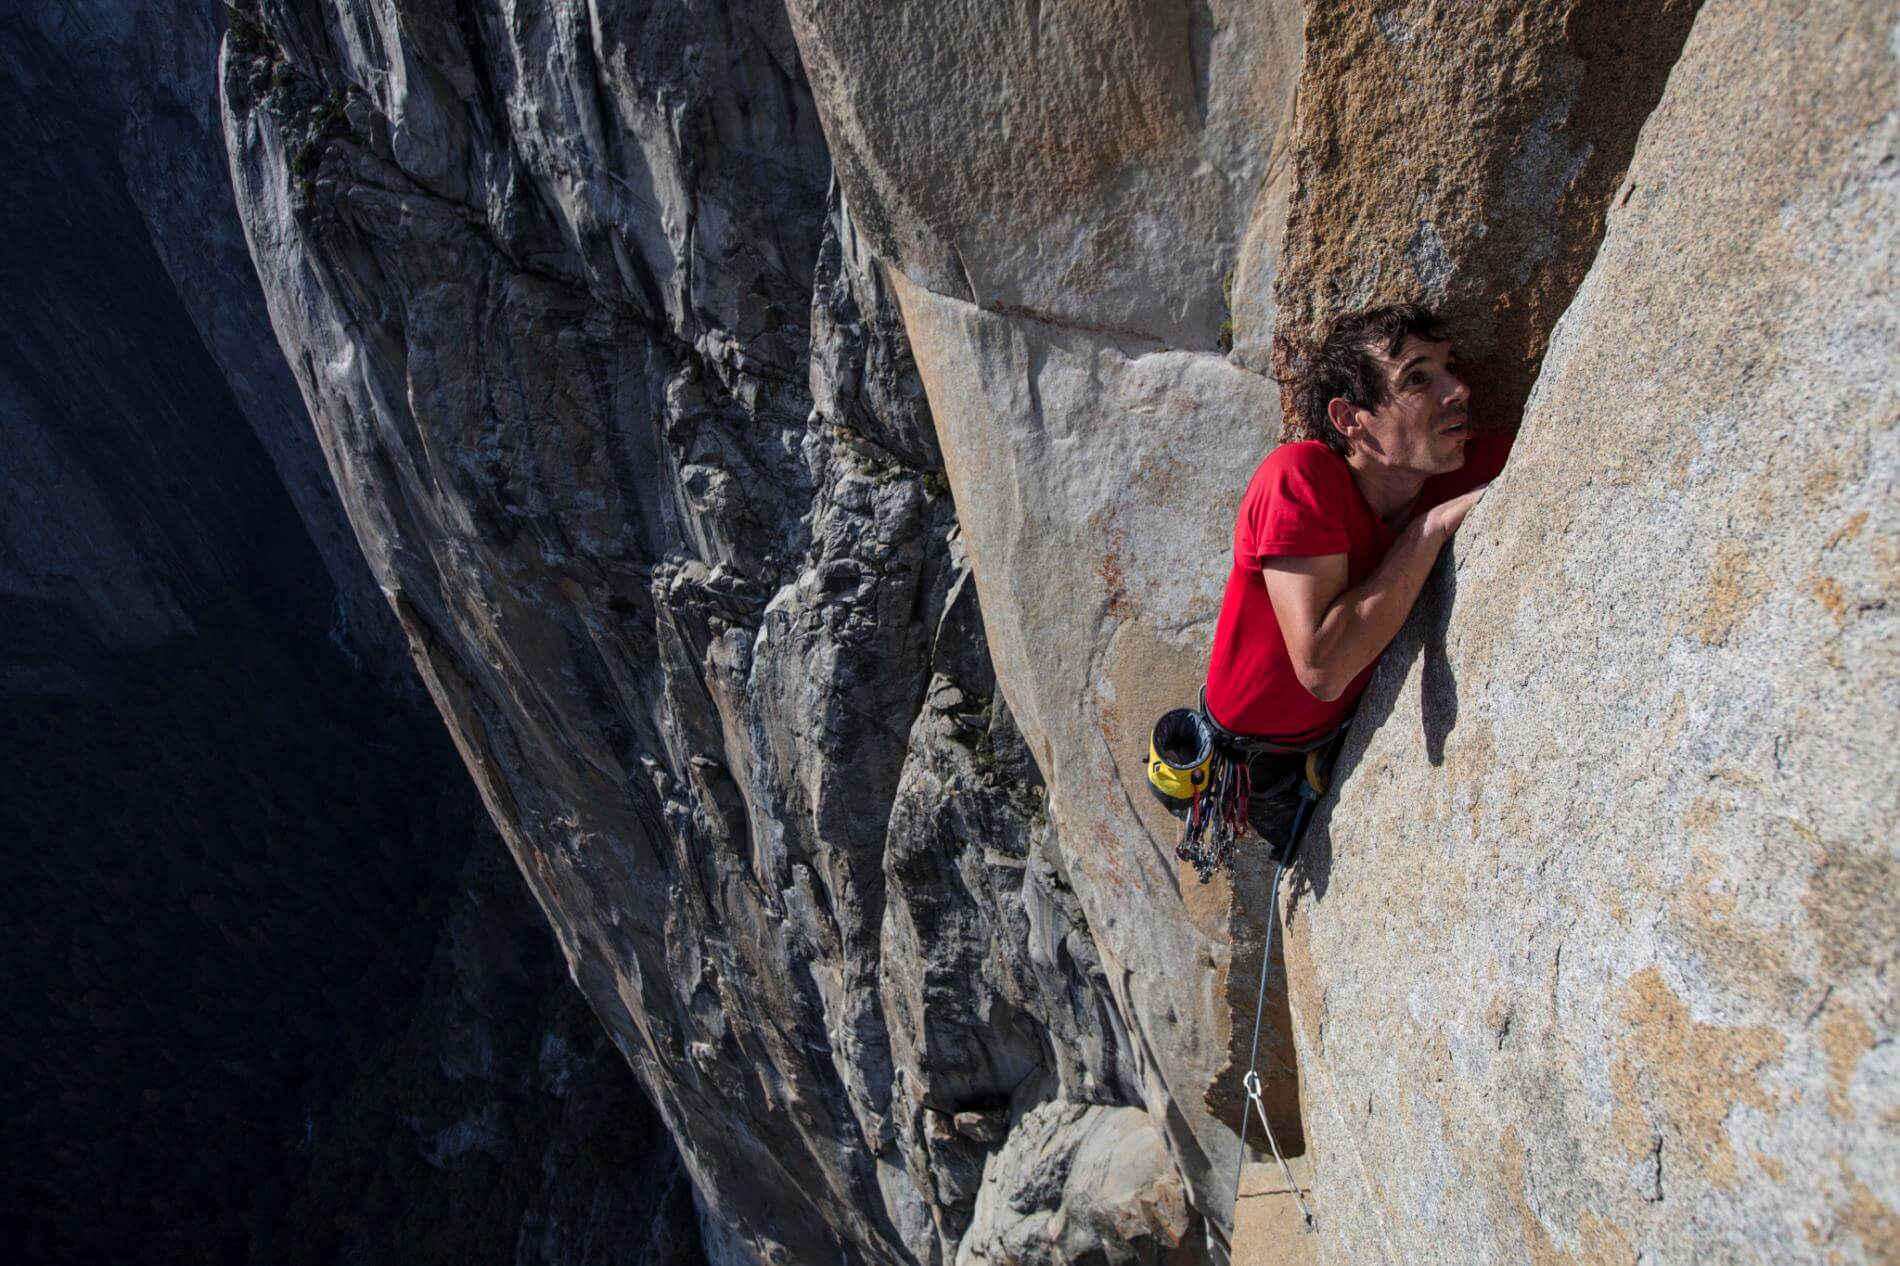 Free Solo - Follow Alex Honnold as he becomes the first person to ever free solo climb Yosemite's 3,000ft high El Capitan Wall. With no ropes or safety gear, he completed arguably the greatest feat in rock climbing history.(Documentary: 1hr & 40min)Film sponsor - High Peaks Cyclery